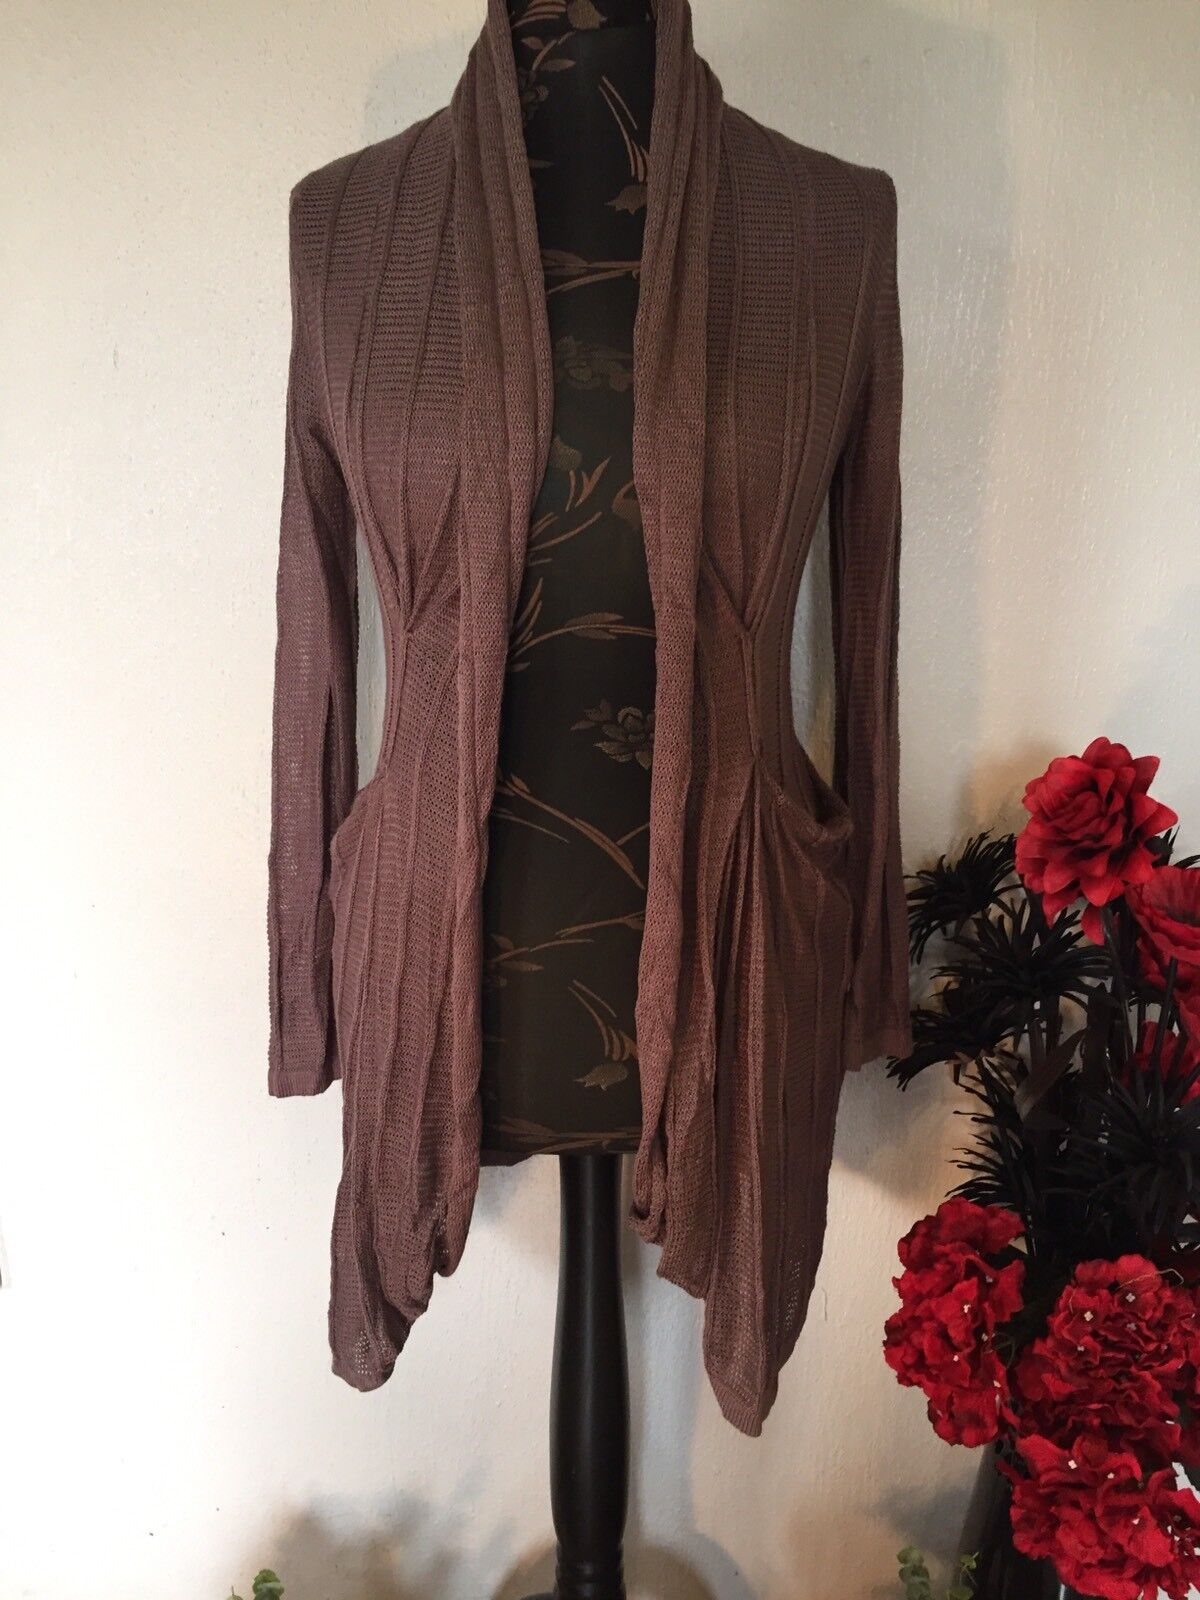 SALE CARDIGAN WRAP BY BOHEMIA OF SWEDEN BOHEMIAN, HIPPY, LAGENLOOK. SIZE M